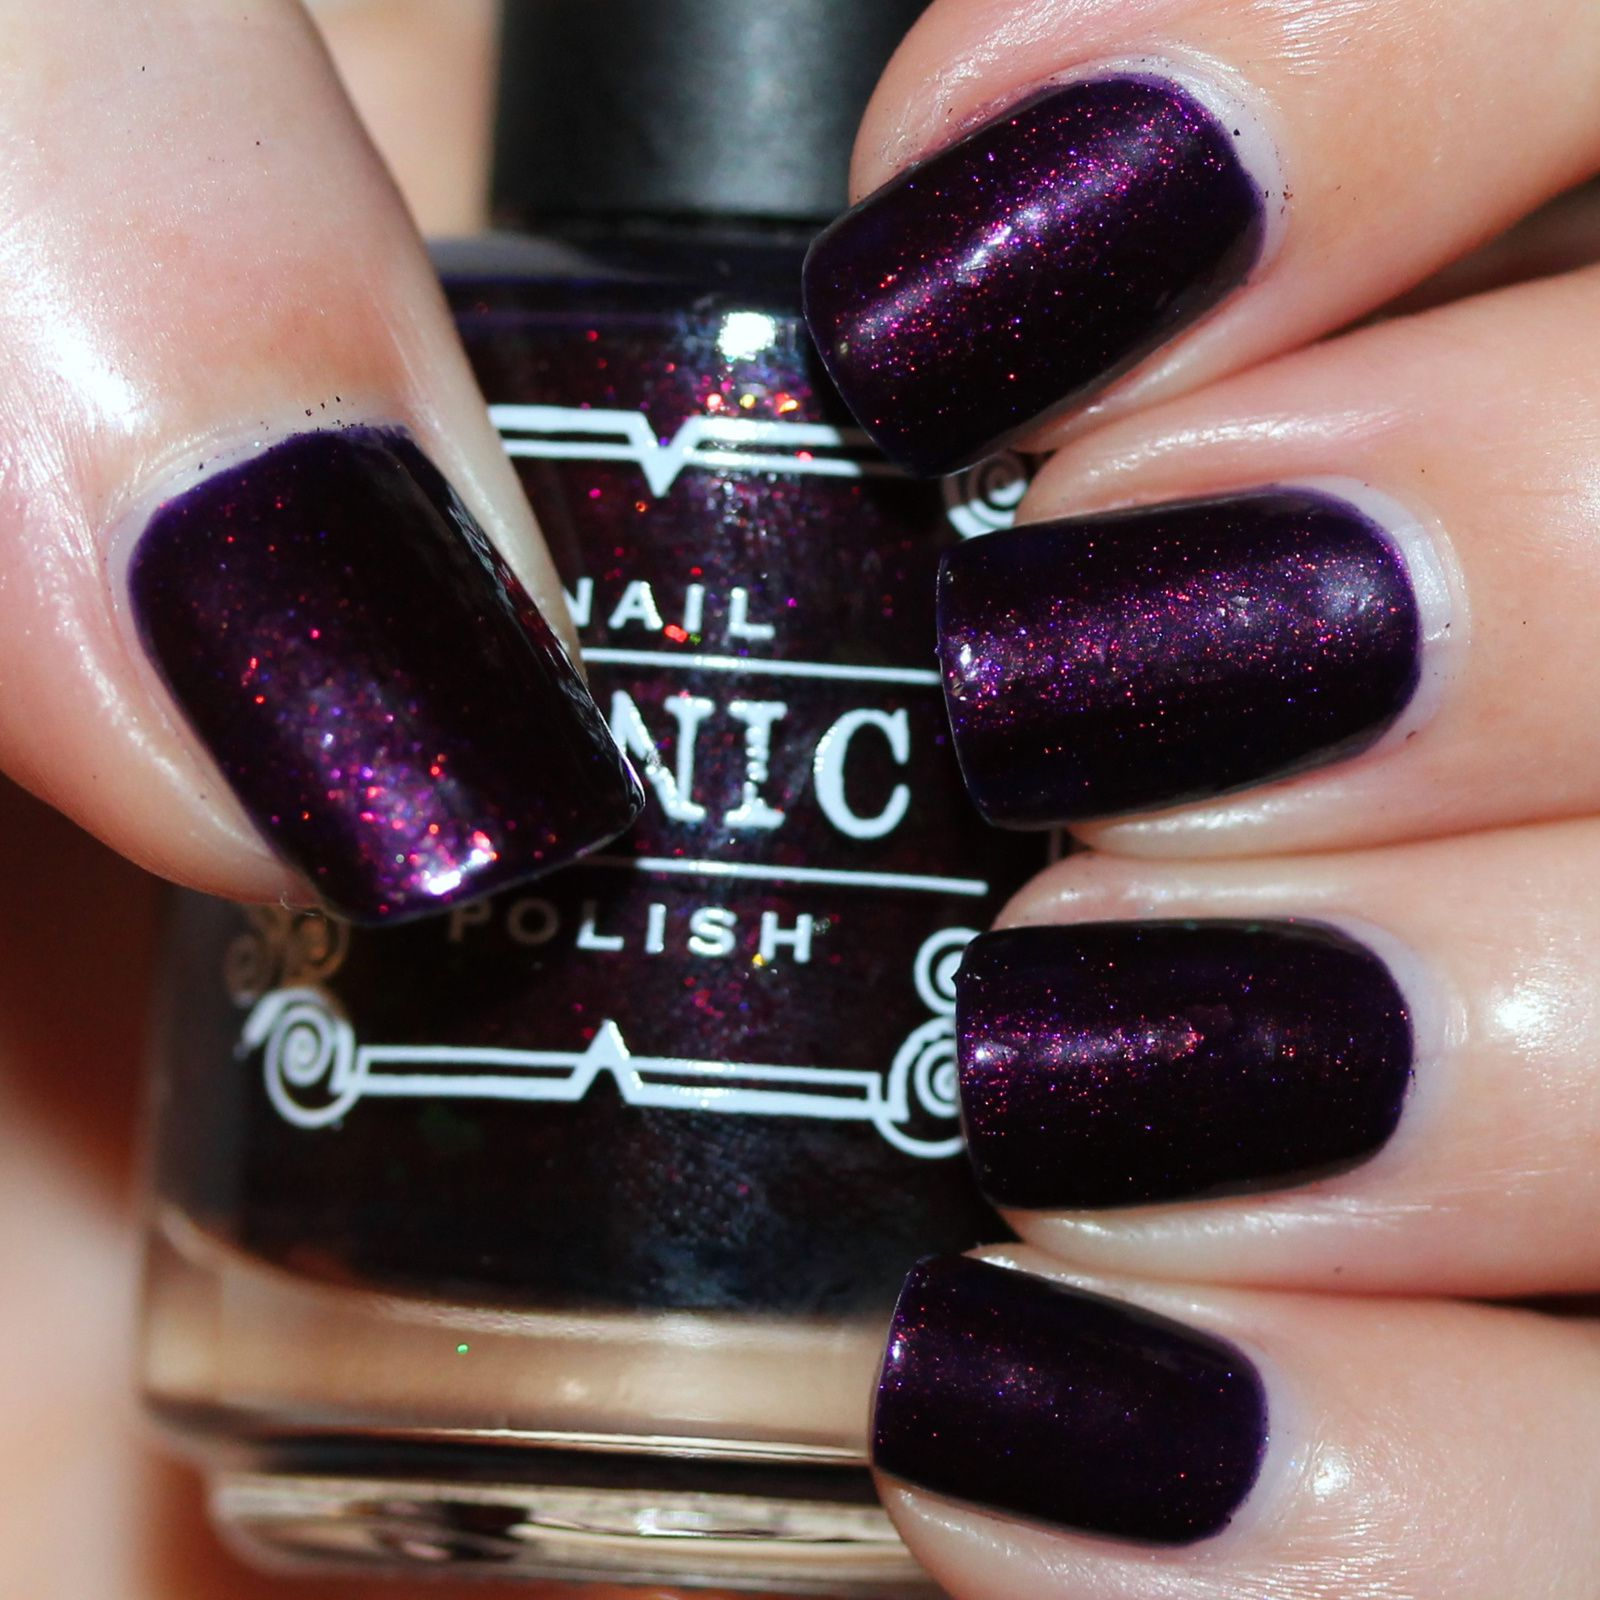 Tonic Polish Be My Violet-tine (2 coats, no top coat)